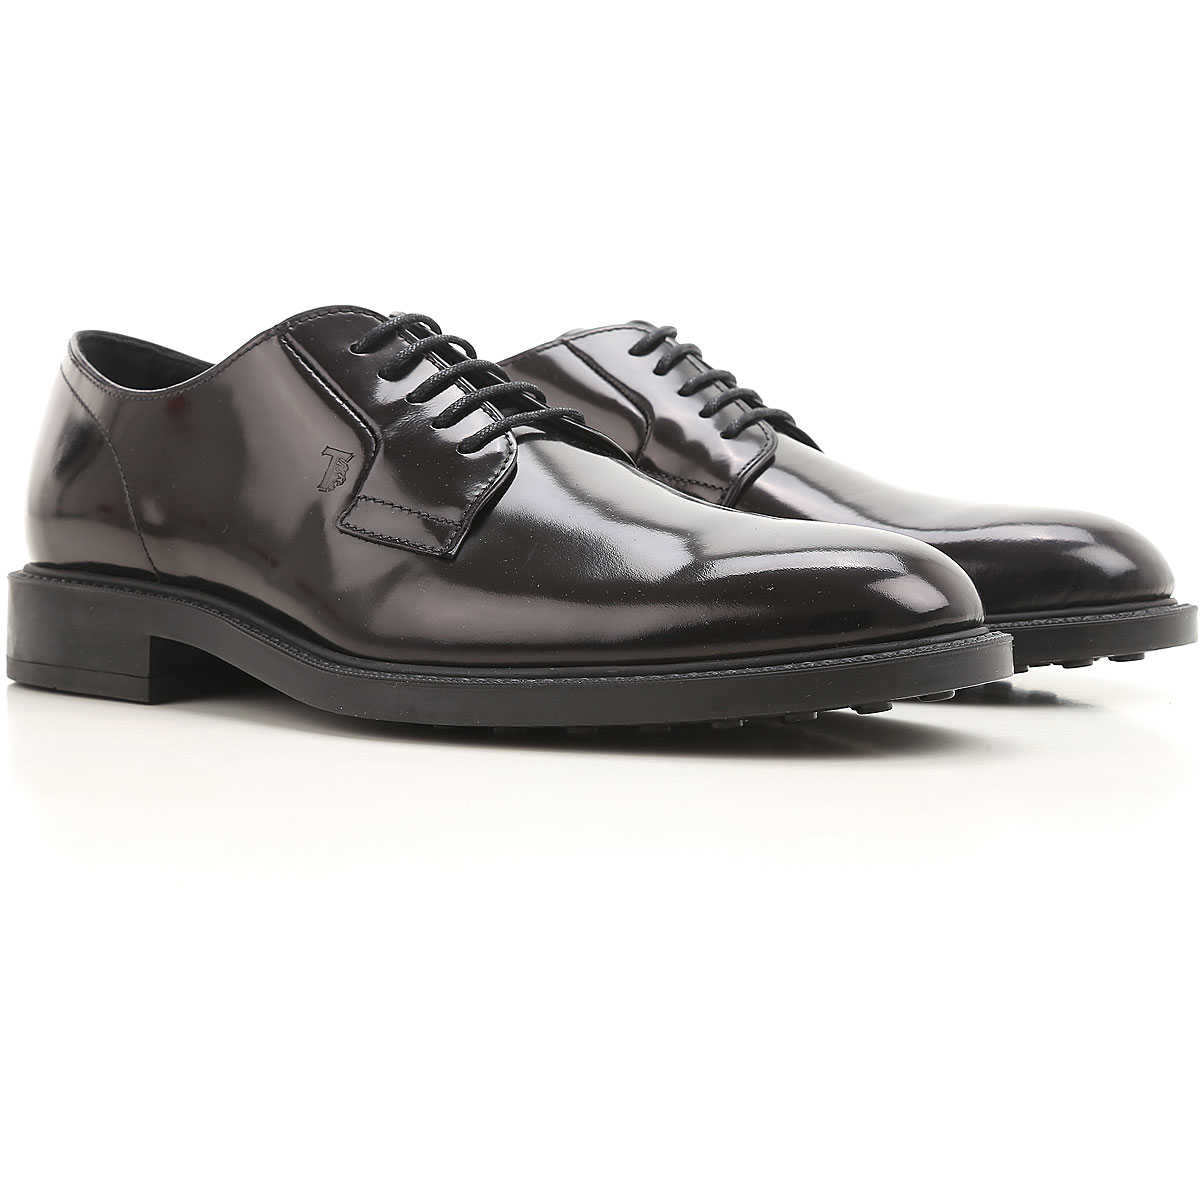 Tods Mens Shoes